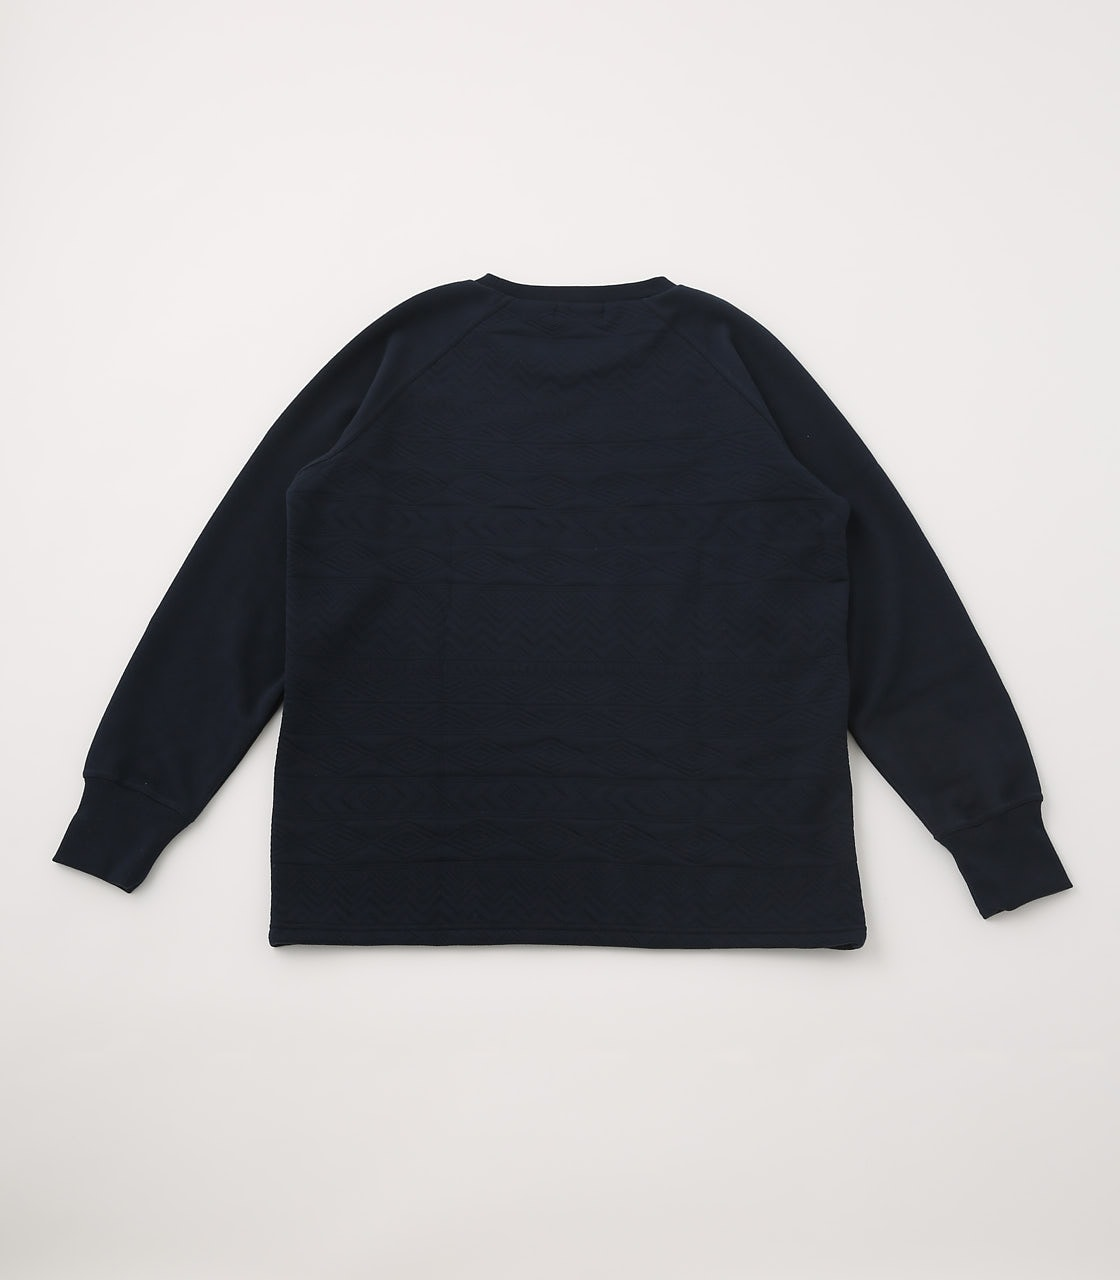 【AZUL BY MOUSSY】MATELASSE RAGLAN TOPS 詳細画像 BLK 2